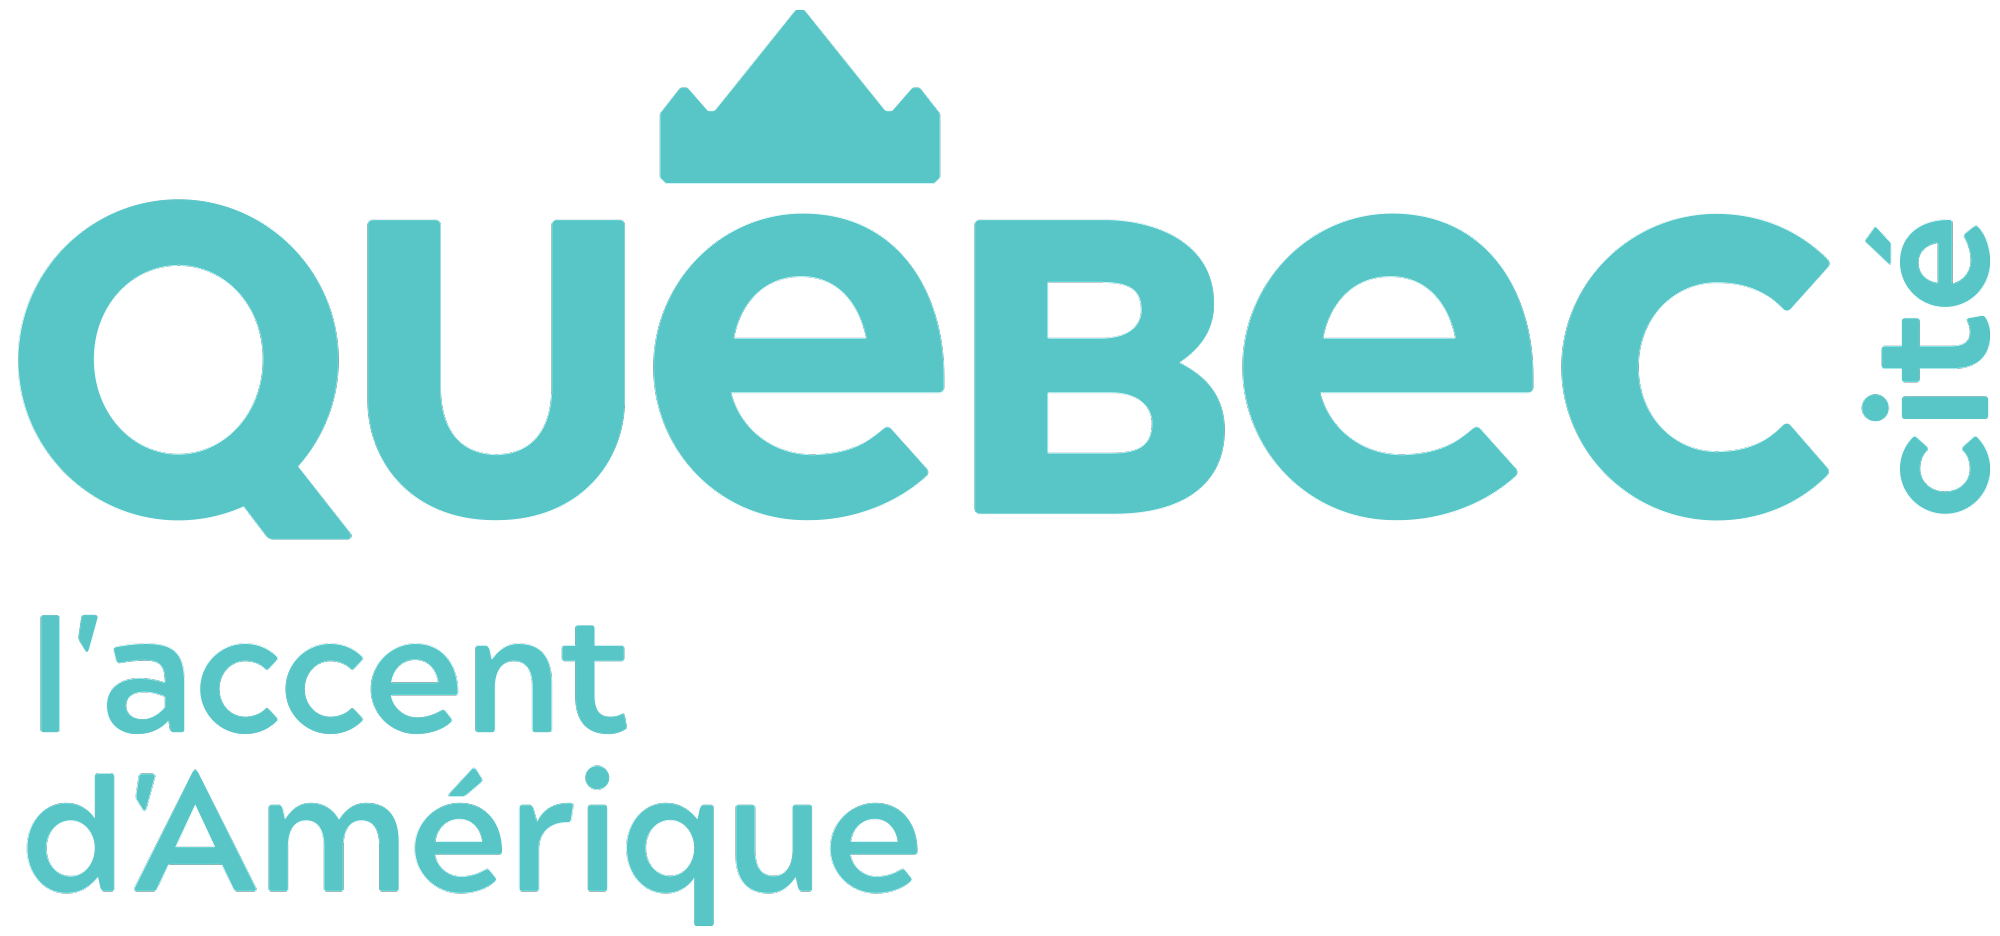 New Logo and Identity for Québec City Tourism by Cossette